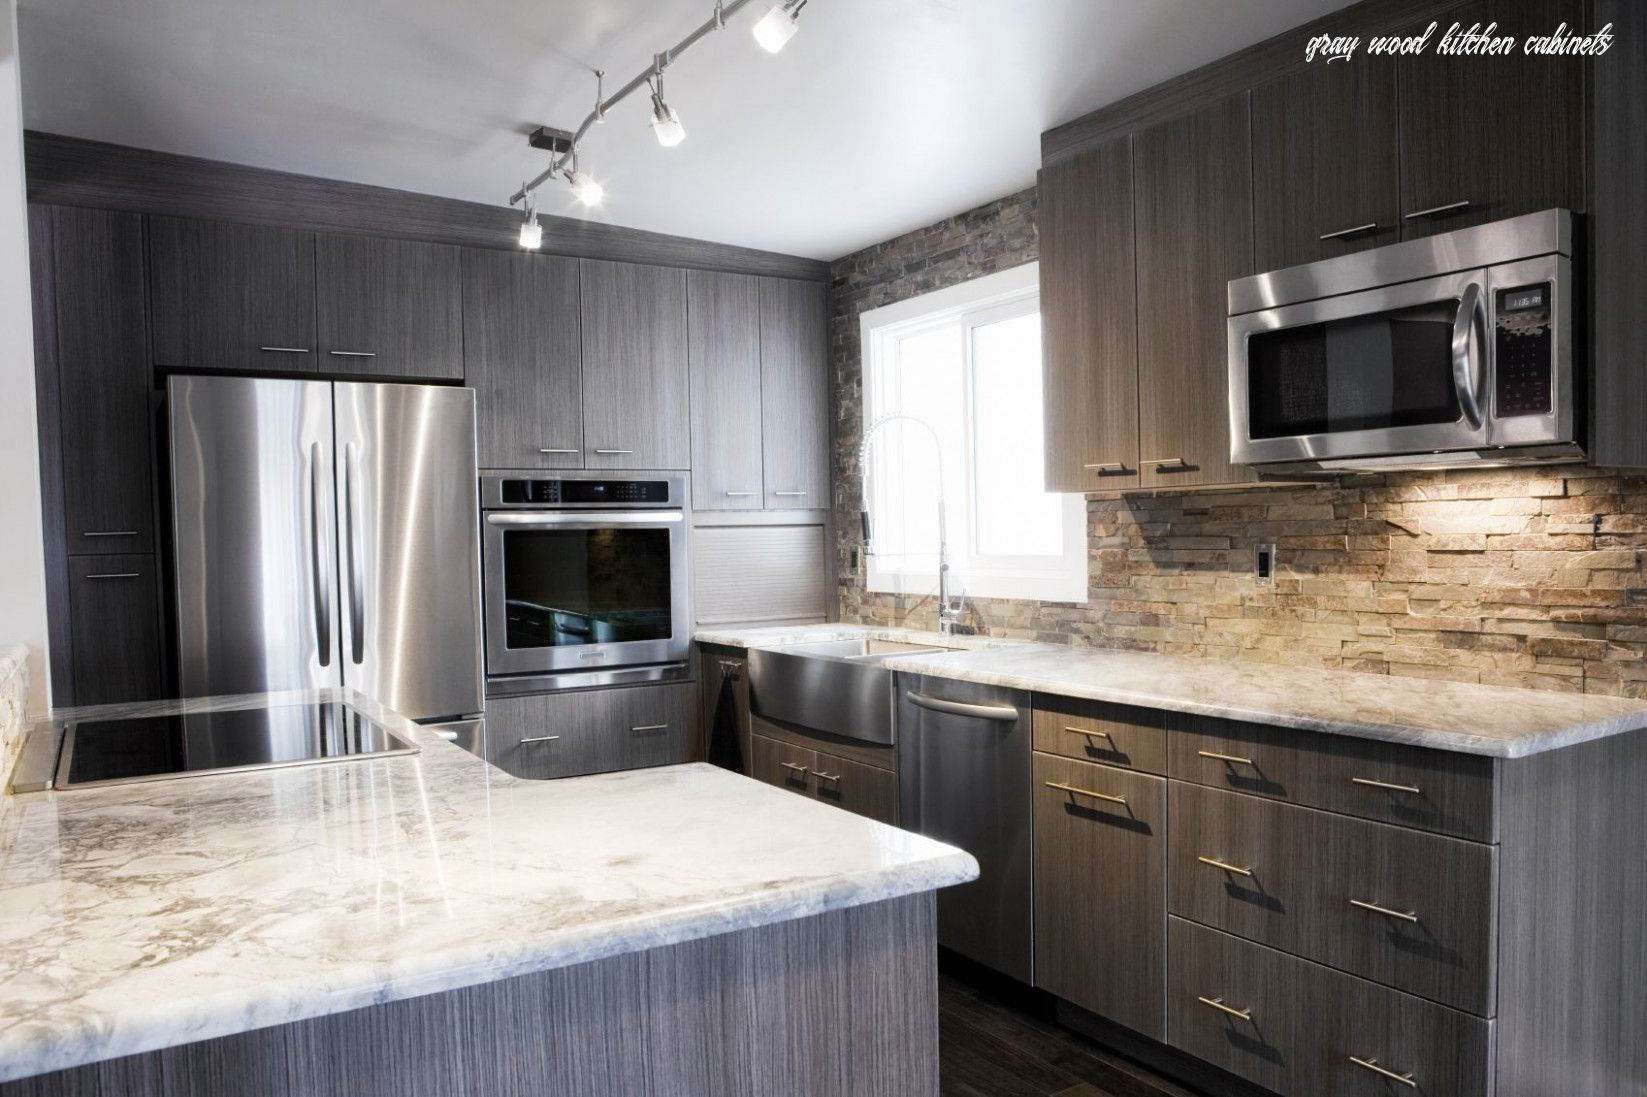 The Real Reason Behind Gray Wood Kitchen Cabinets In 2020 Grey Kitchen Walls Dark Grey Kitchen Cabinets Grey Kitchen Designs